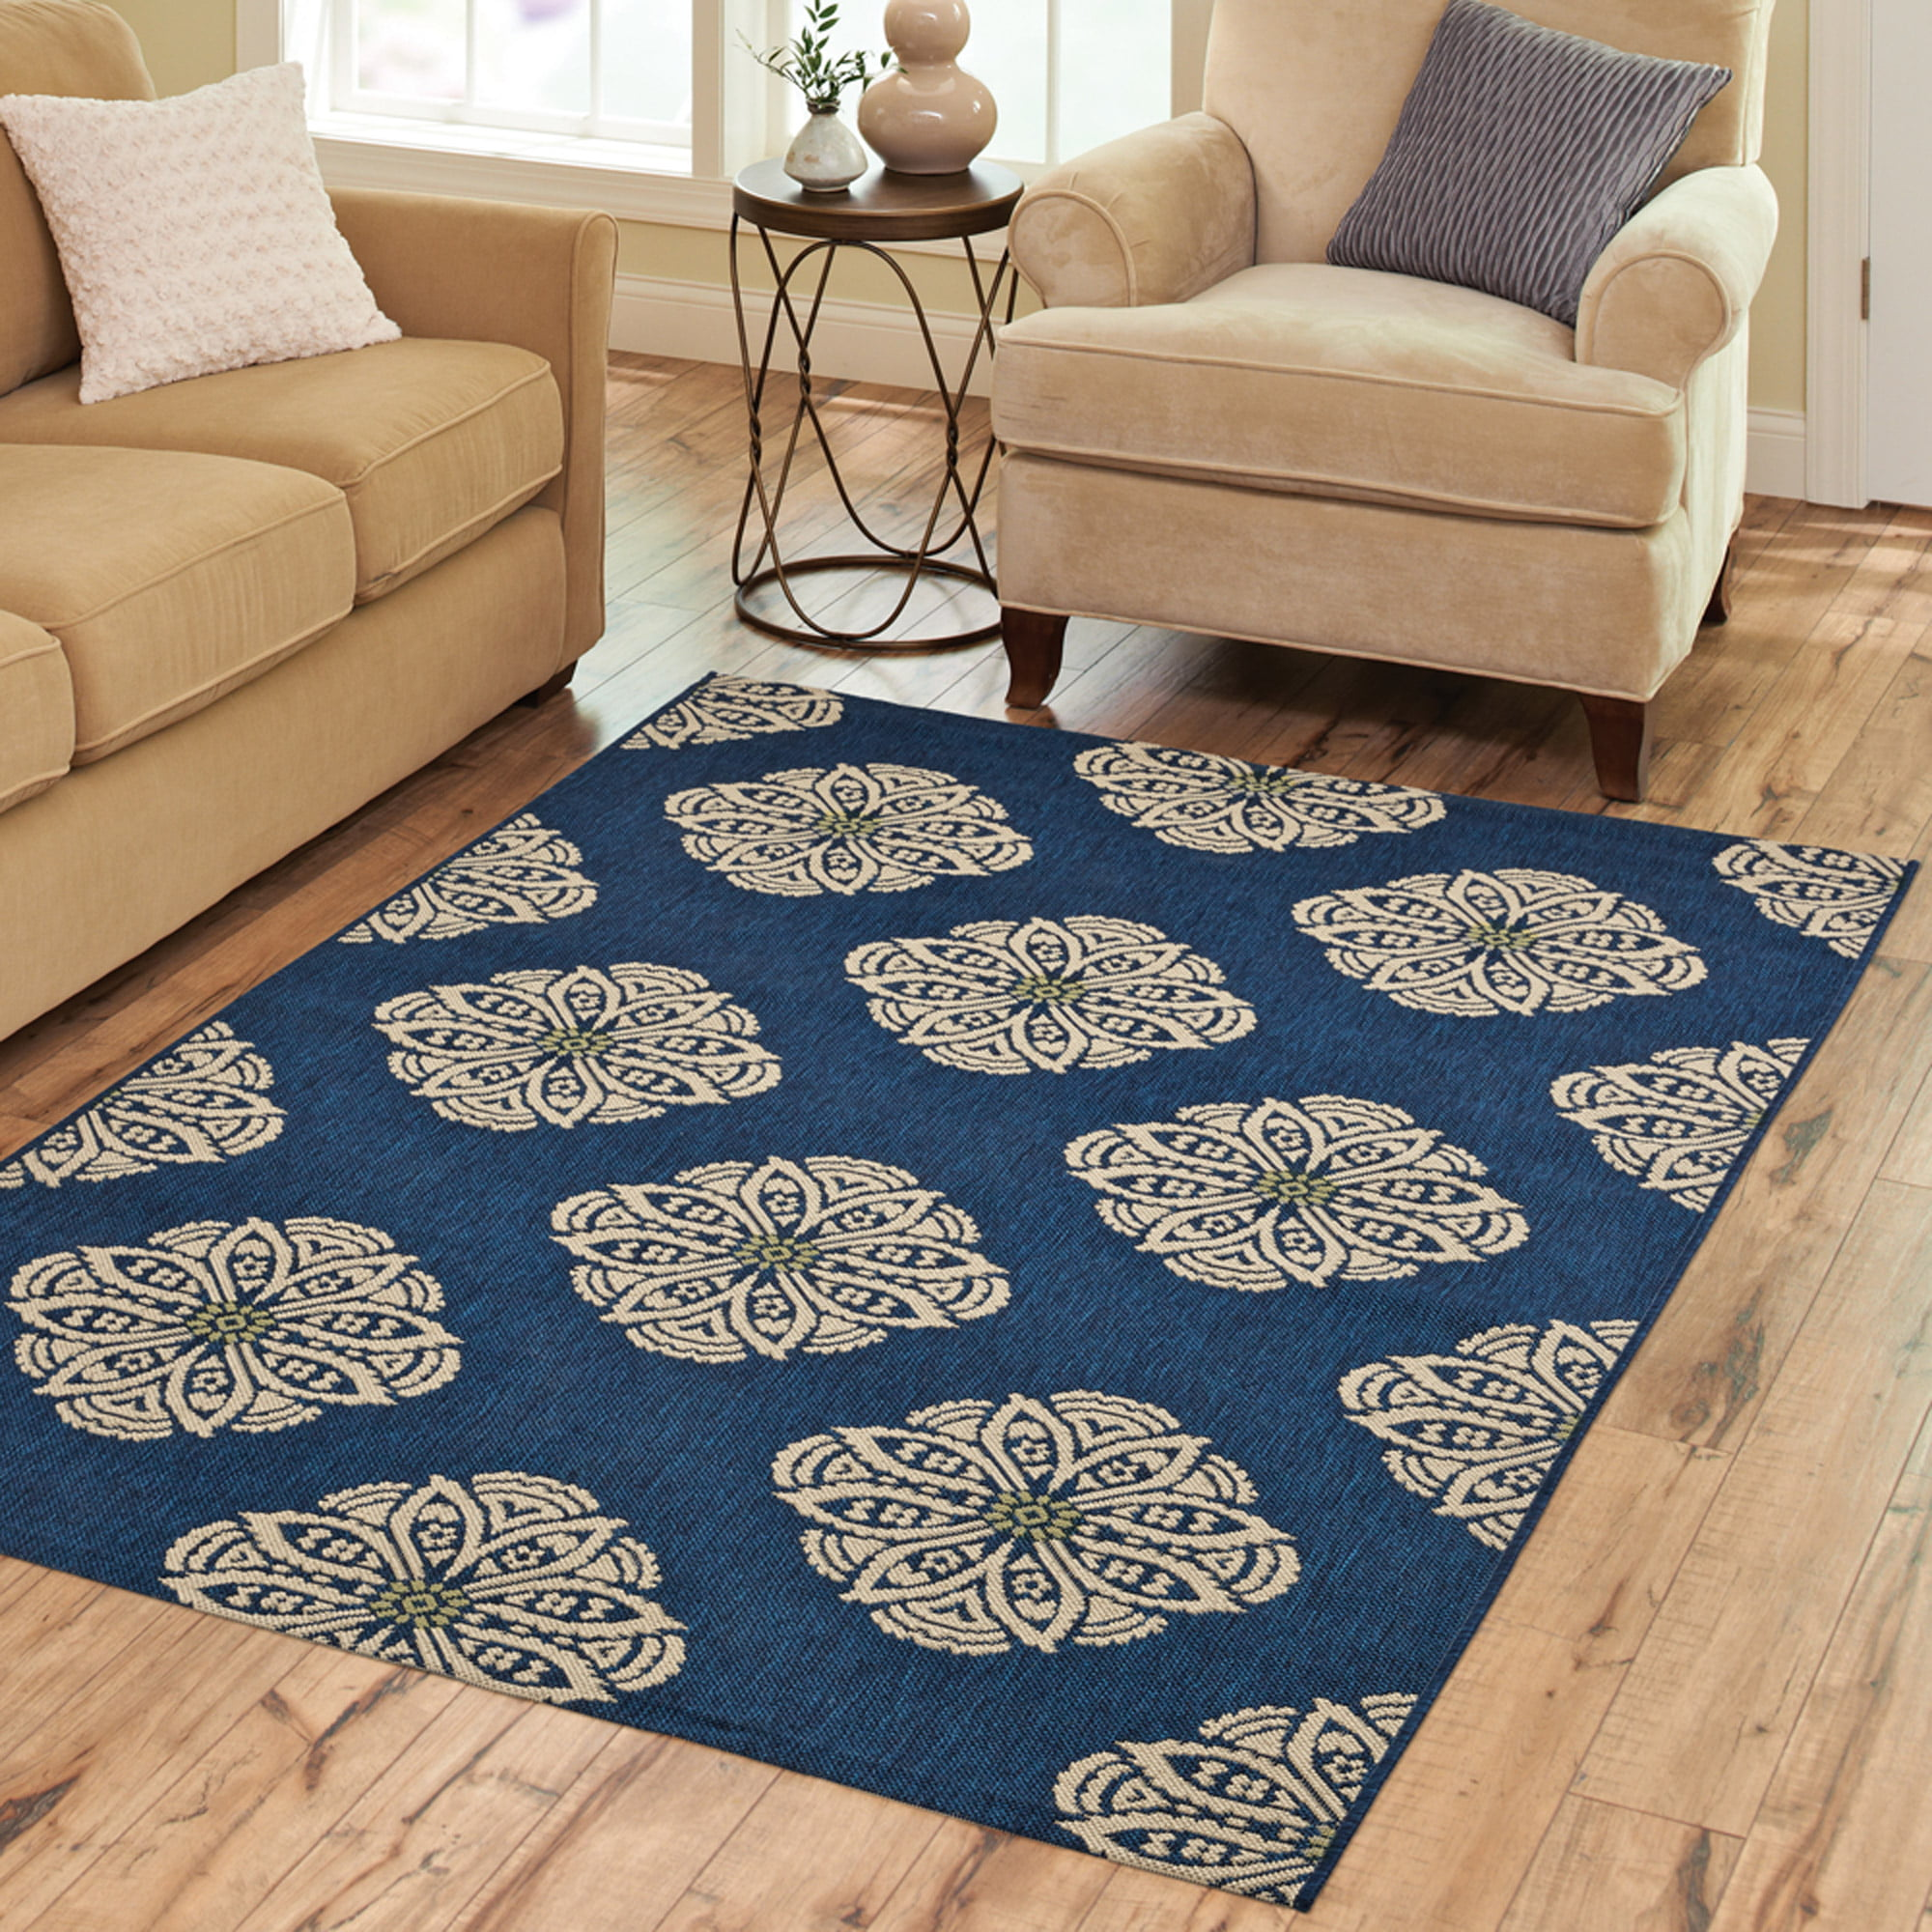 stupendous clearance target rugs mats outdoor polypropylene area sale plastic home mad patio ideas decorators rug